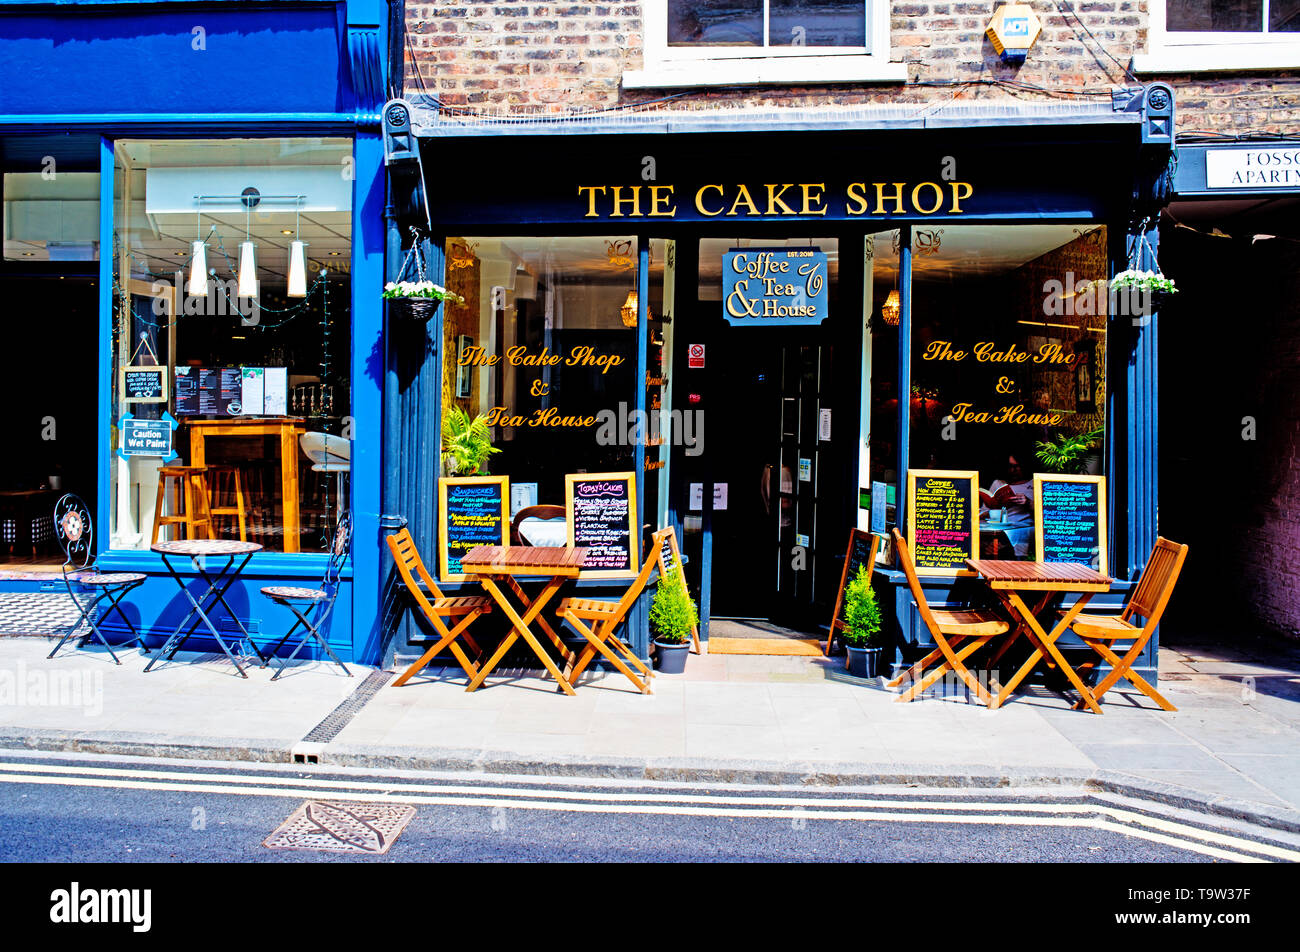 The Cake Shop, Fossgate, York, England - Stock Image